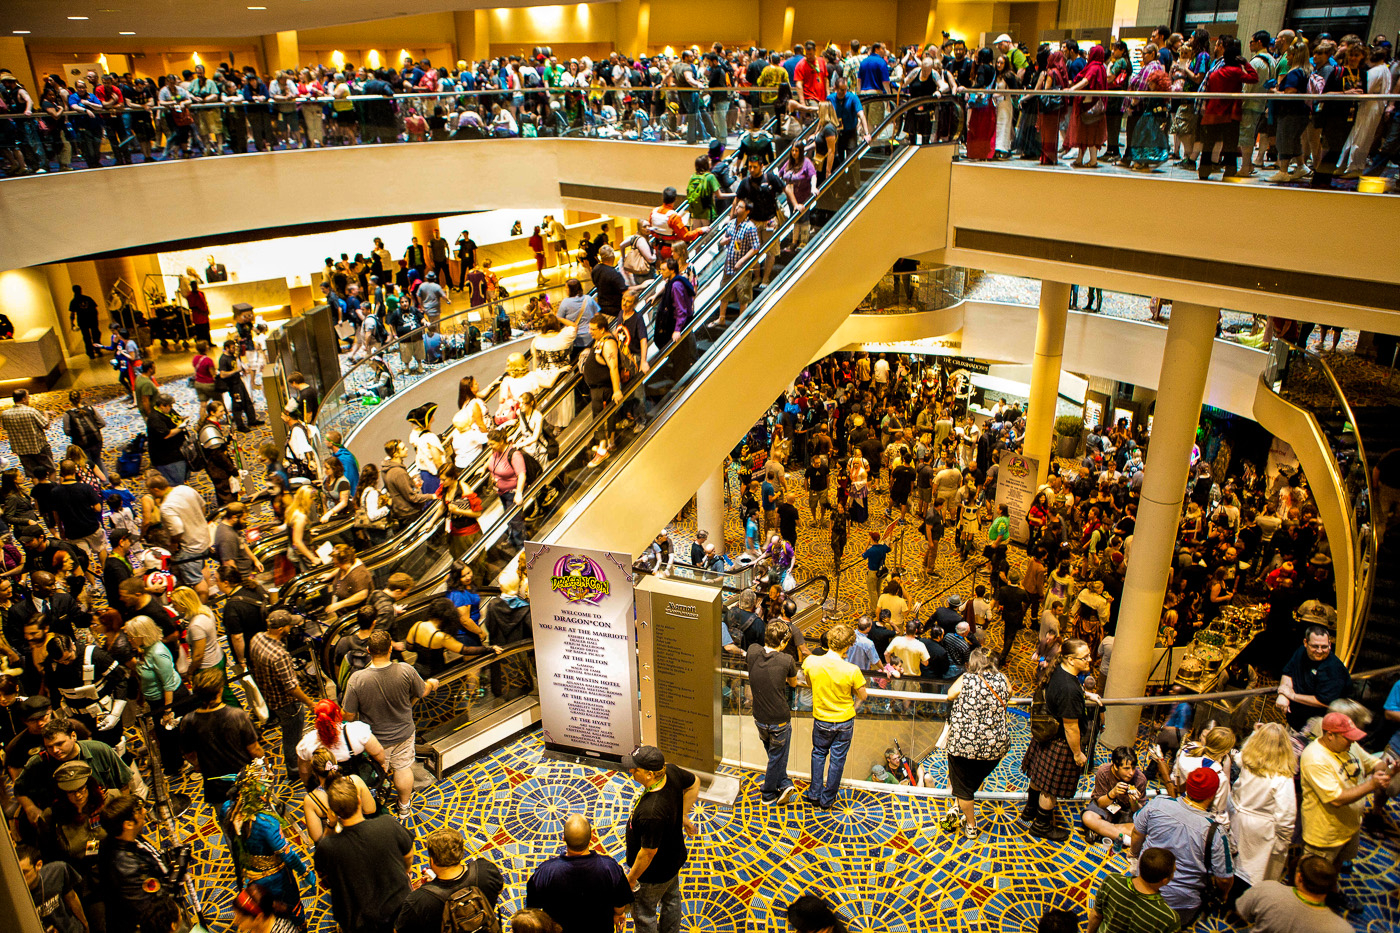 Kids to Dragon Con, Tips for taking kids to dragon con, family friendly dragon con, dragon con 2017